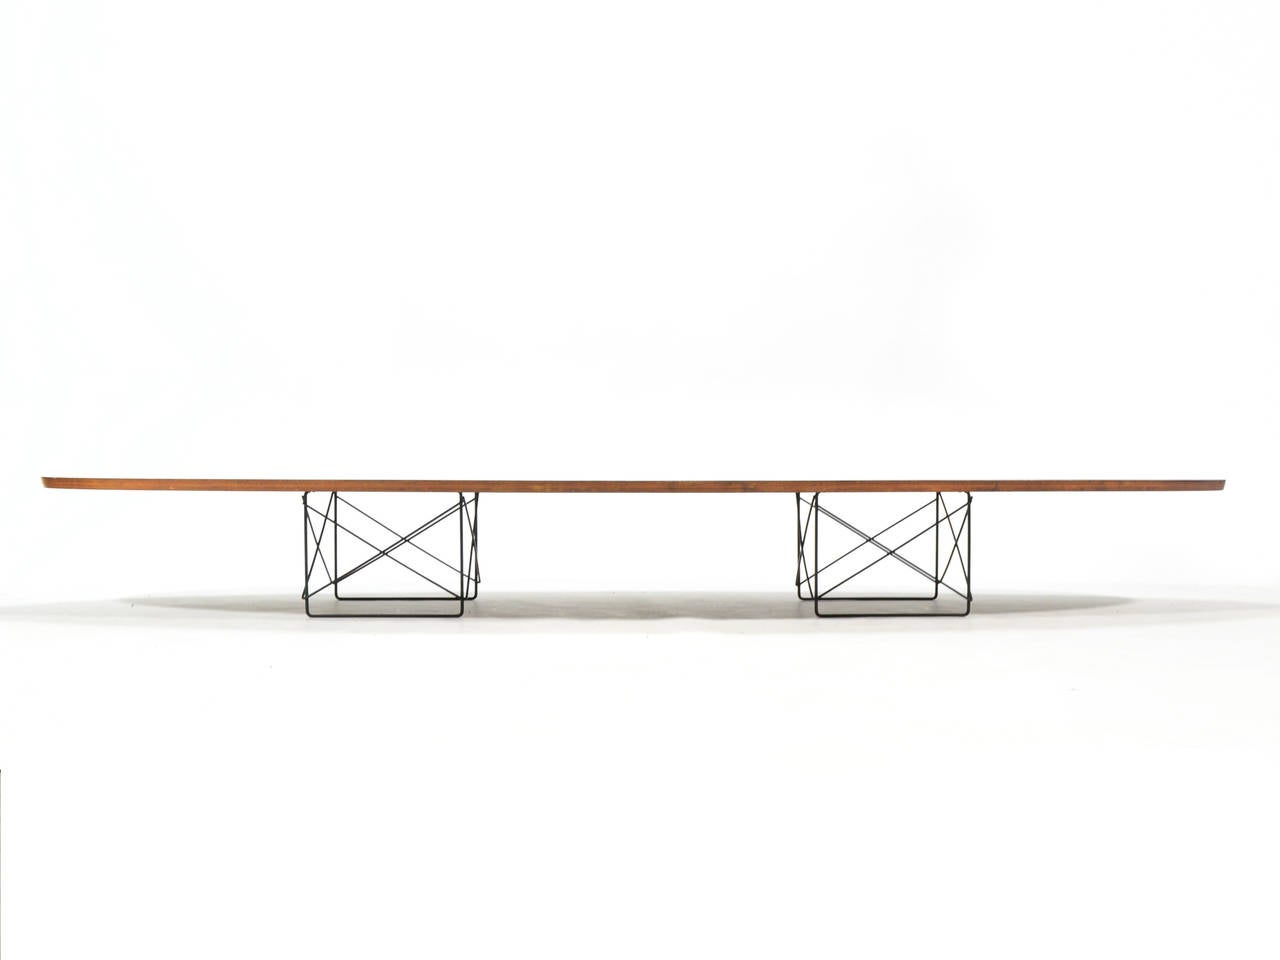 Eames Etr Quot Surfboard Quot Coffee Table By Herman Miller At 1stdibs